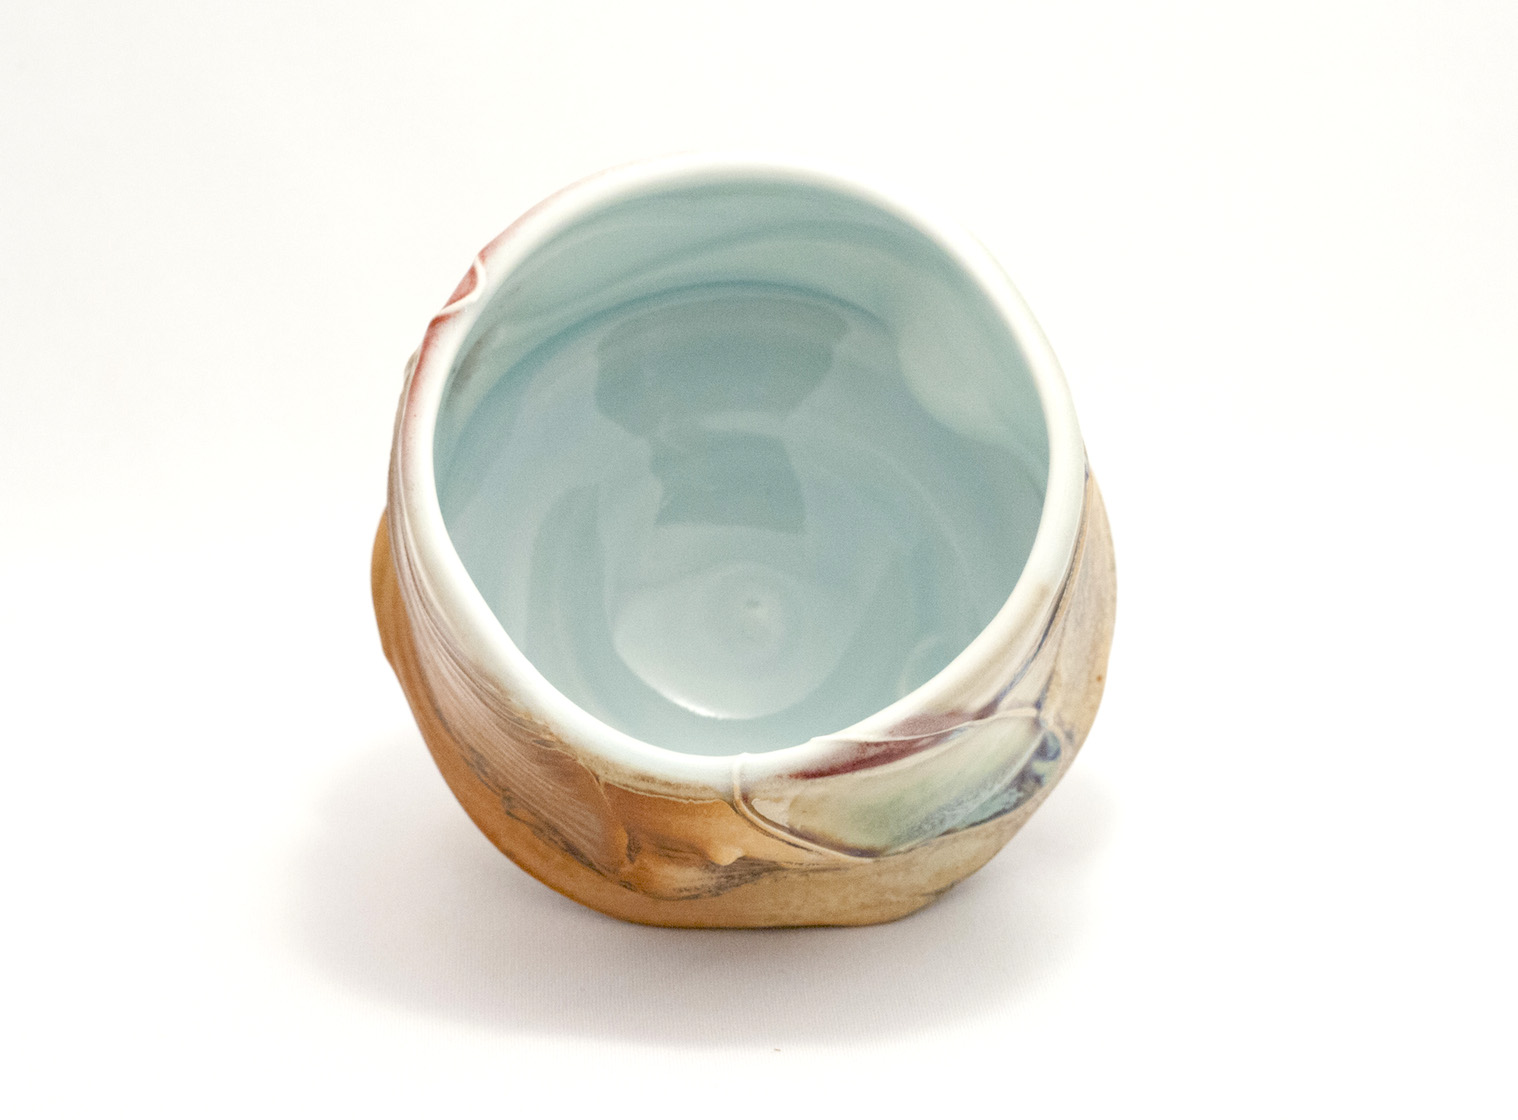 Tom Coleman, Crystal Matt Tea Bowl, porcelain ceramic vessel, functional, pottery, cup, Sherrie Gallerie